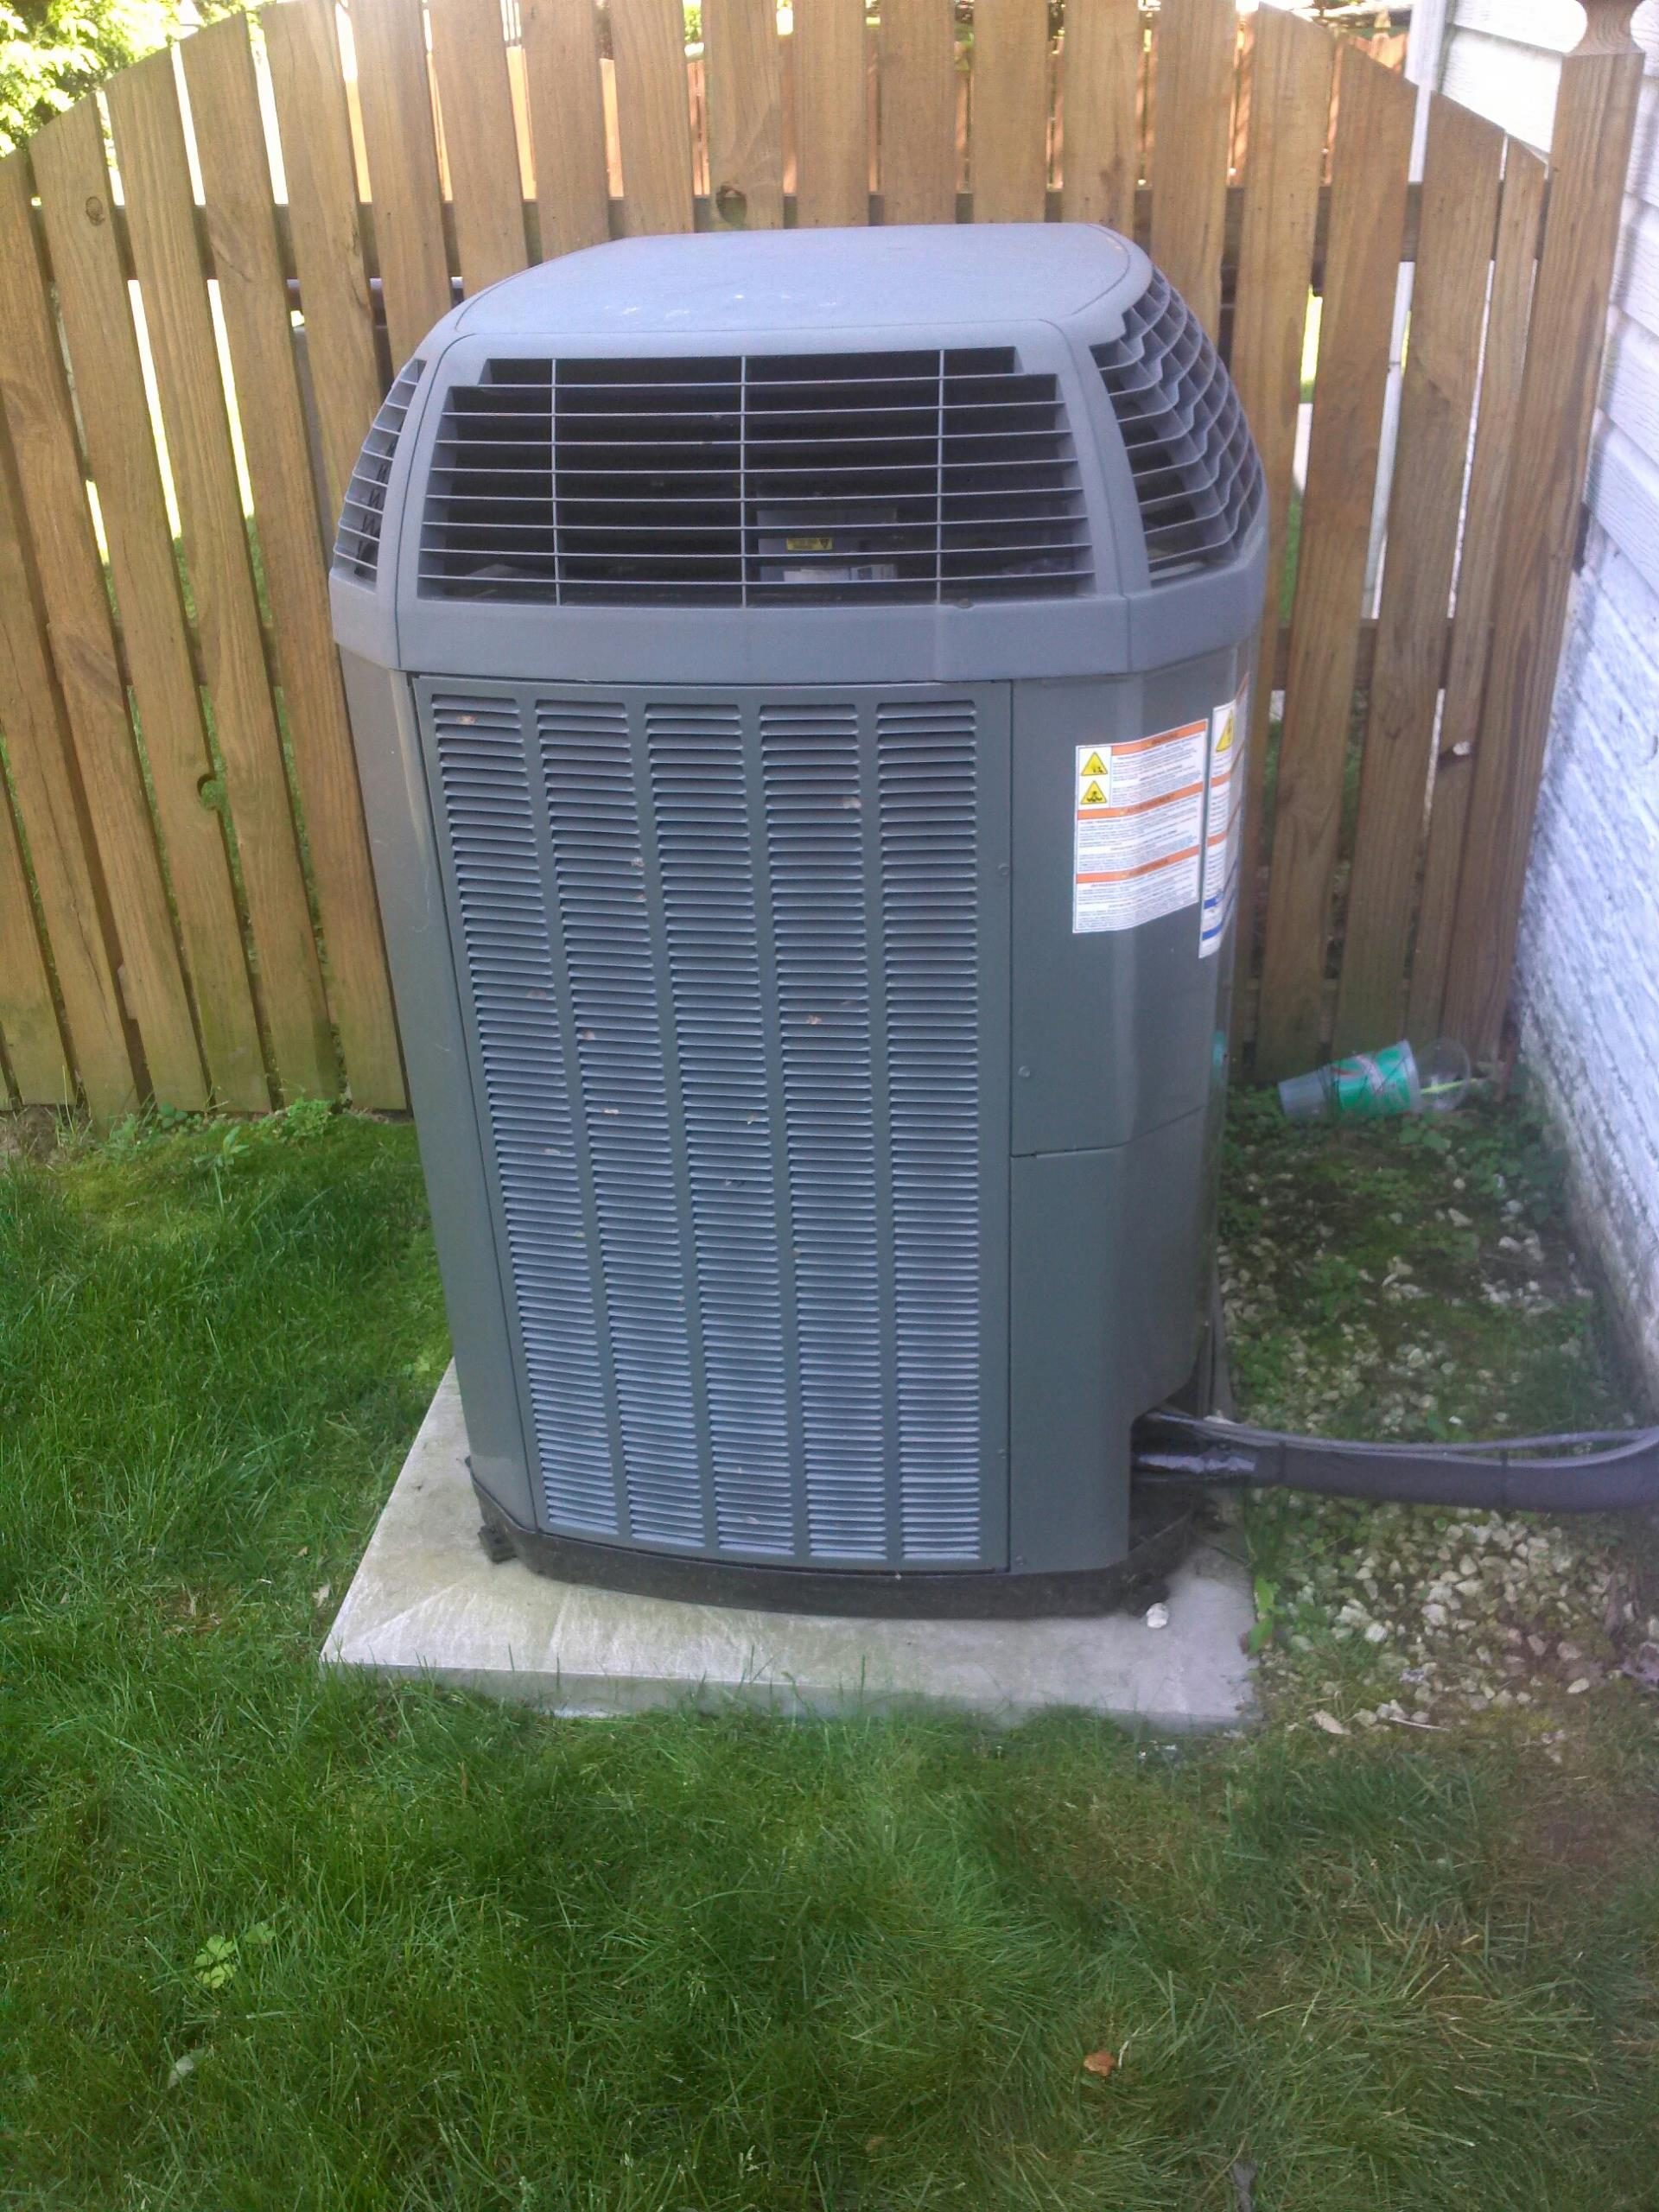 Crofton, MD - Trane AC air conditioning & heating system maintenance repair service call in Crofton Maryland 21114